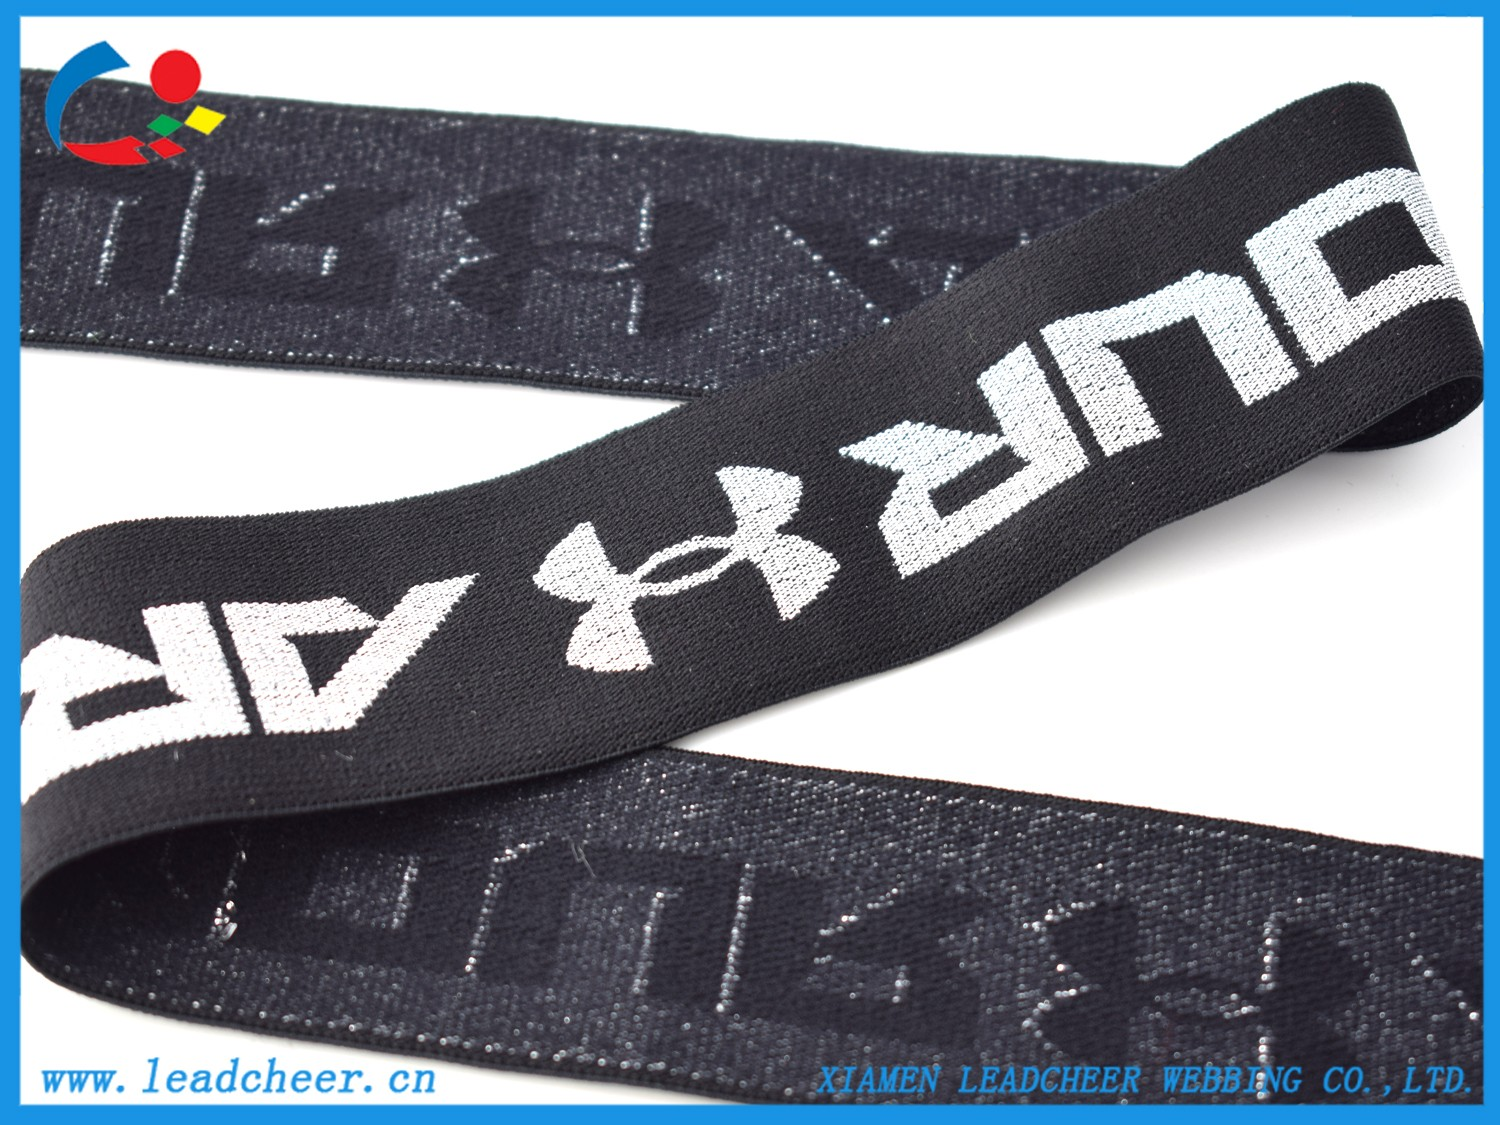 High quality Customized Men's Underwear Elastic Jacquard Webbing Band Quotes,China Customized Men's Underwear Elastic Jacquard Webbing Band Factory,Customized Men's Underwear Elastic Jacquard Webbing Band Purchasing